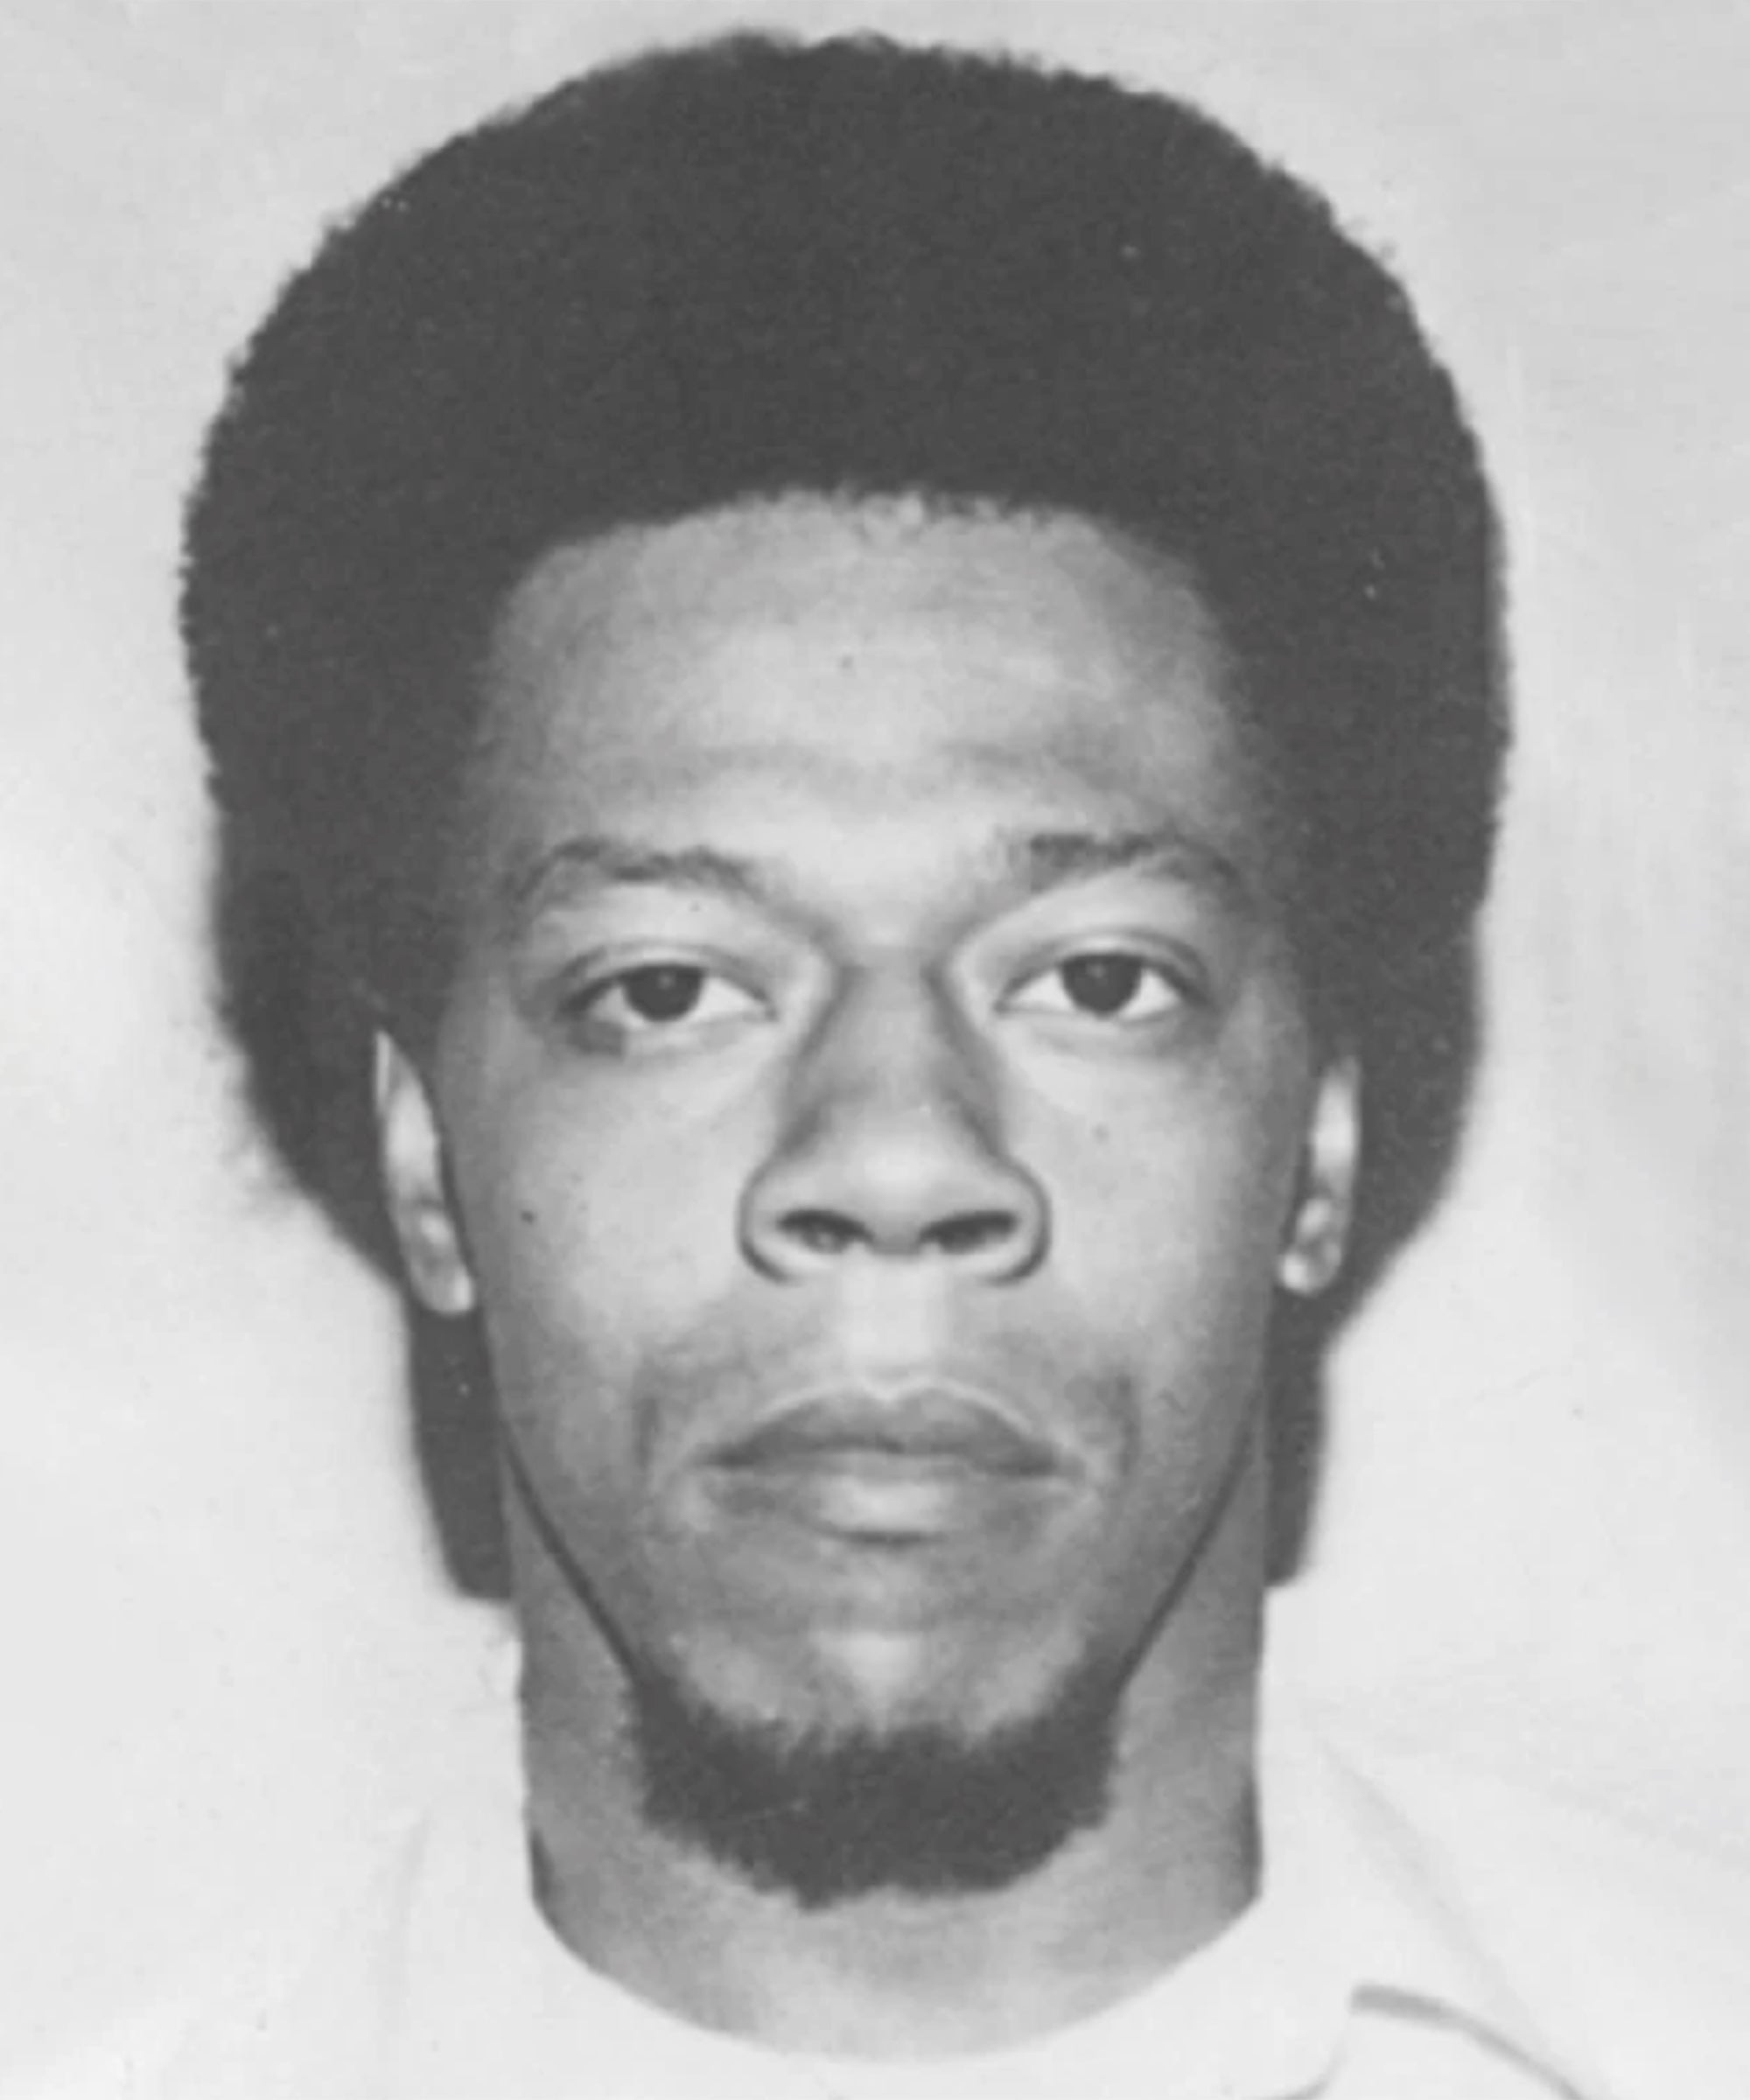 This Convicted Murderer Has Been On The Run For 40 Years. Will A New Podcast Find Him?